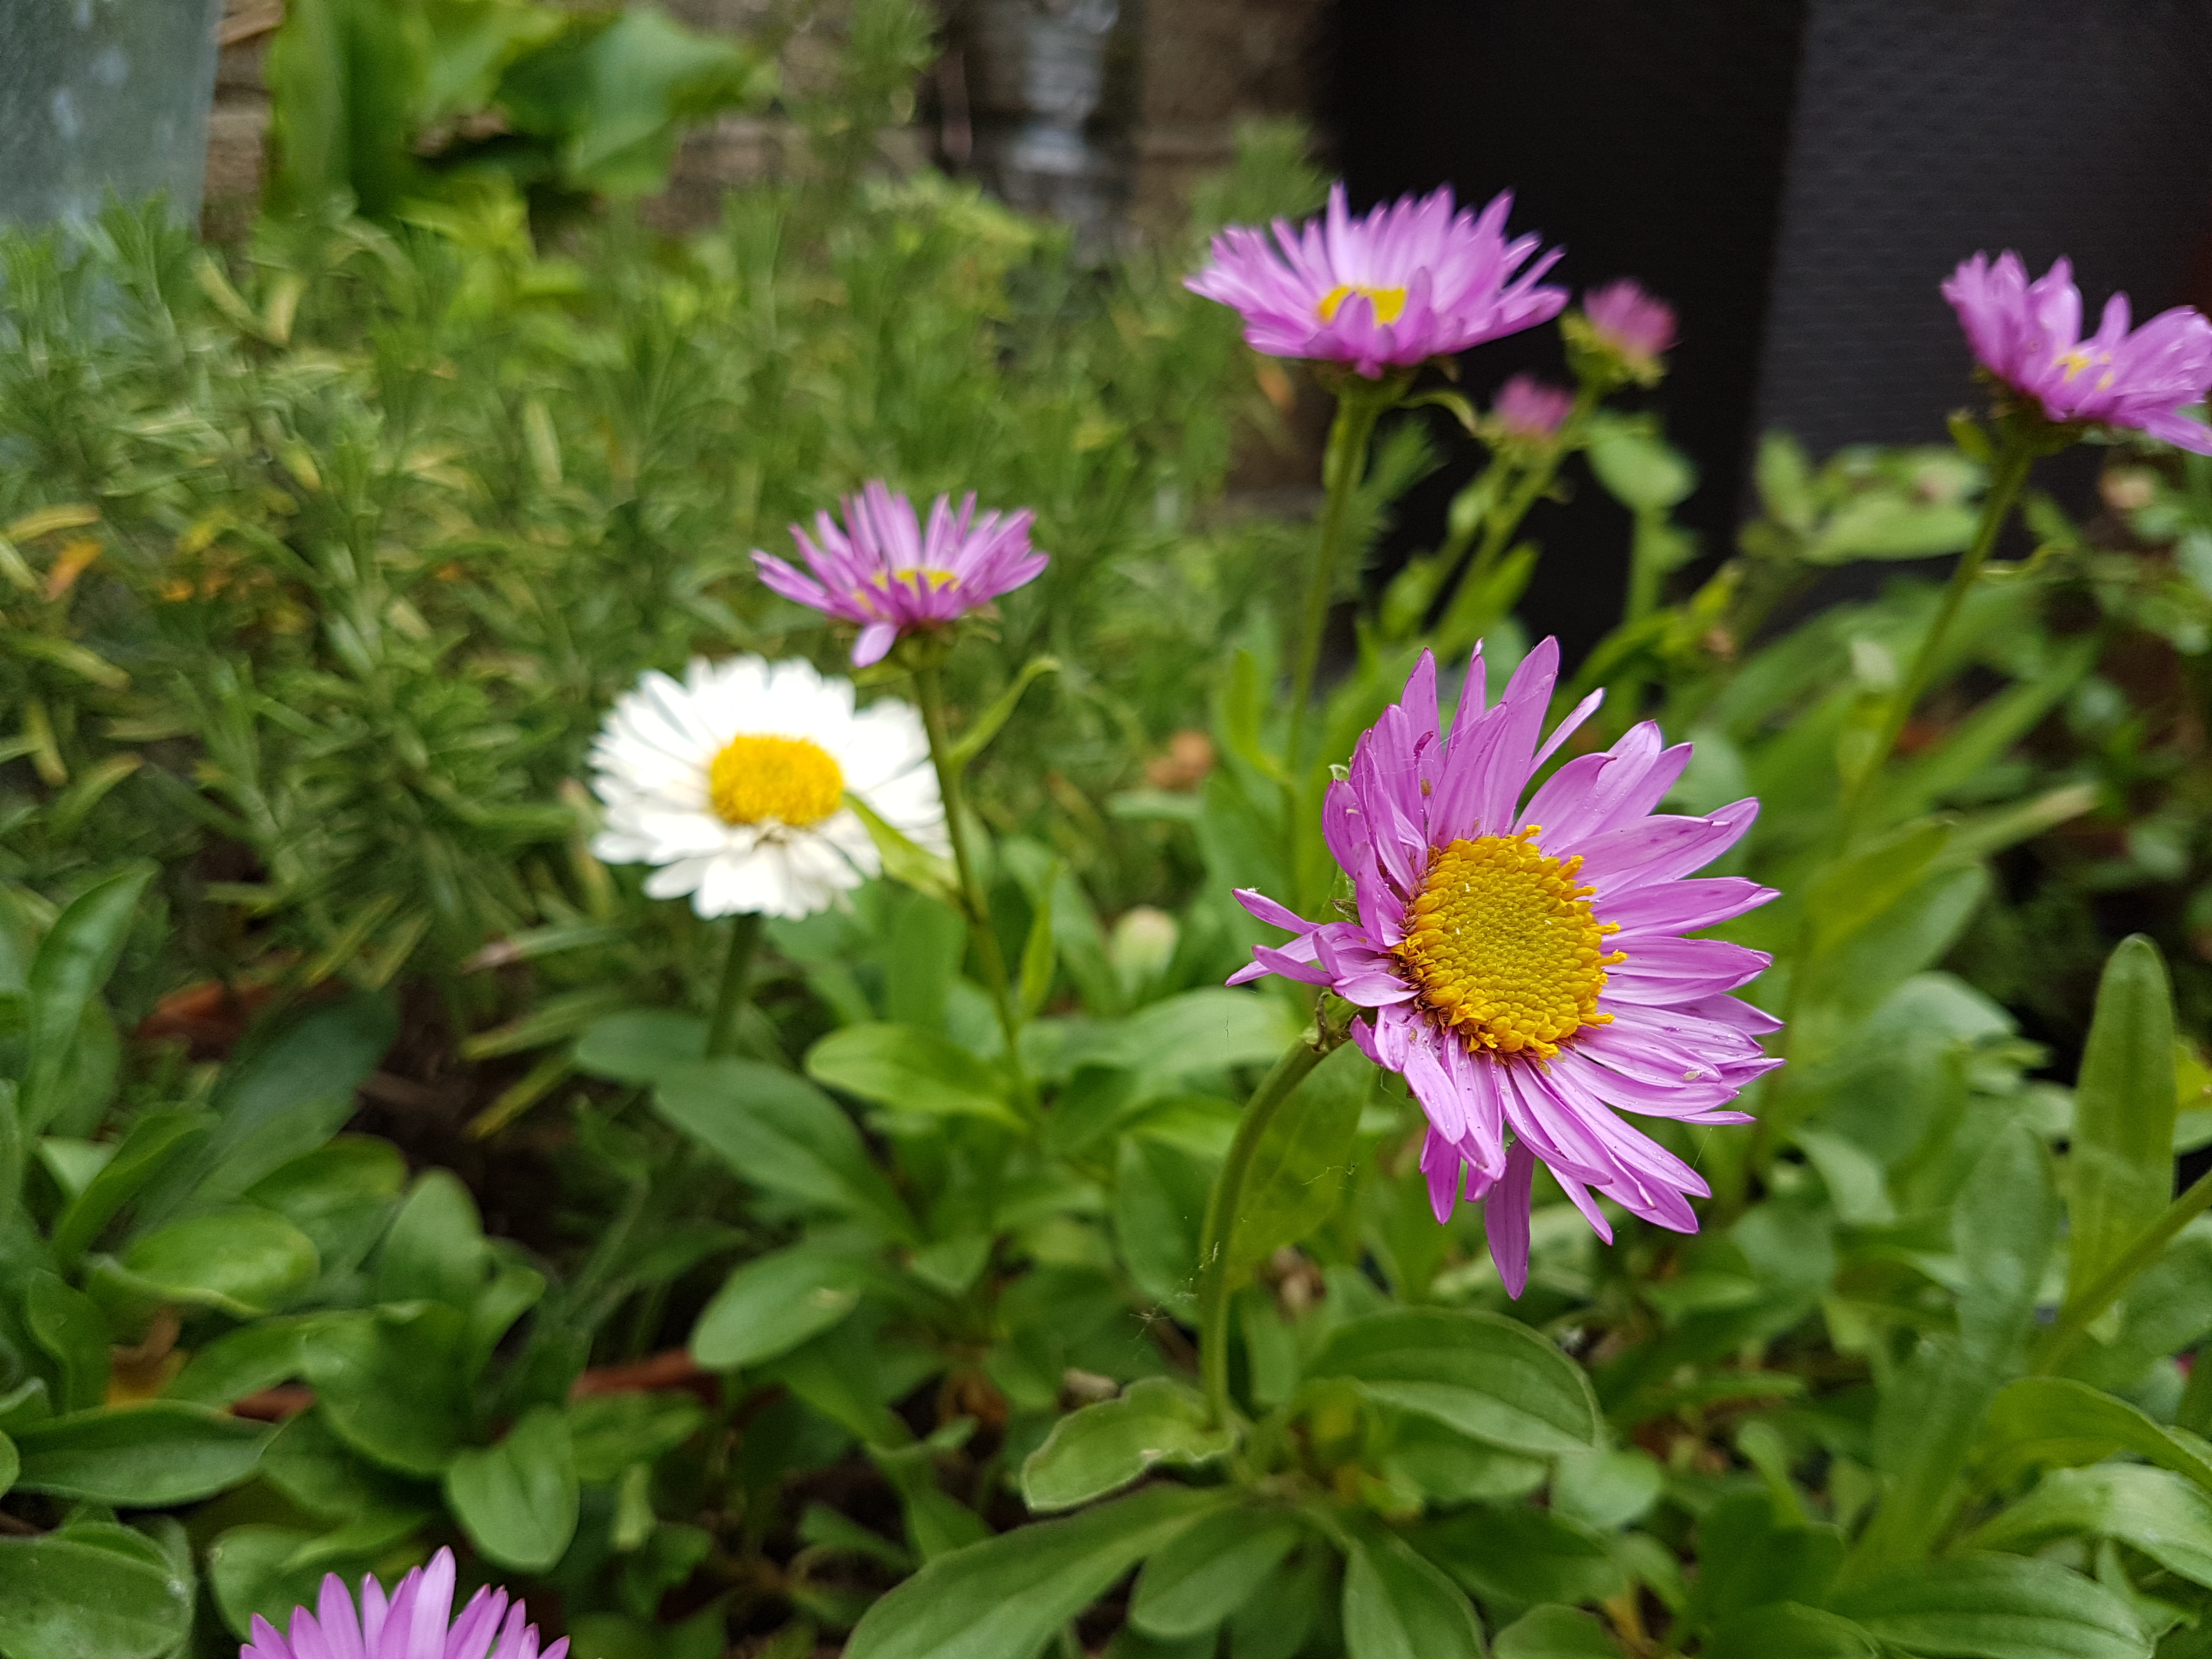 Alpine asters in flower